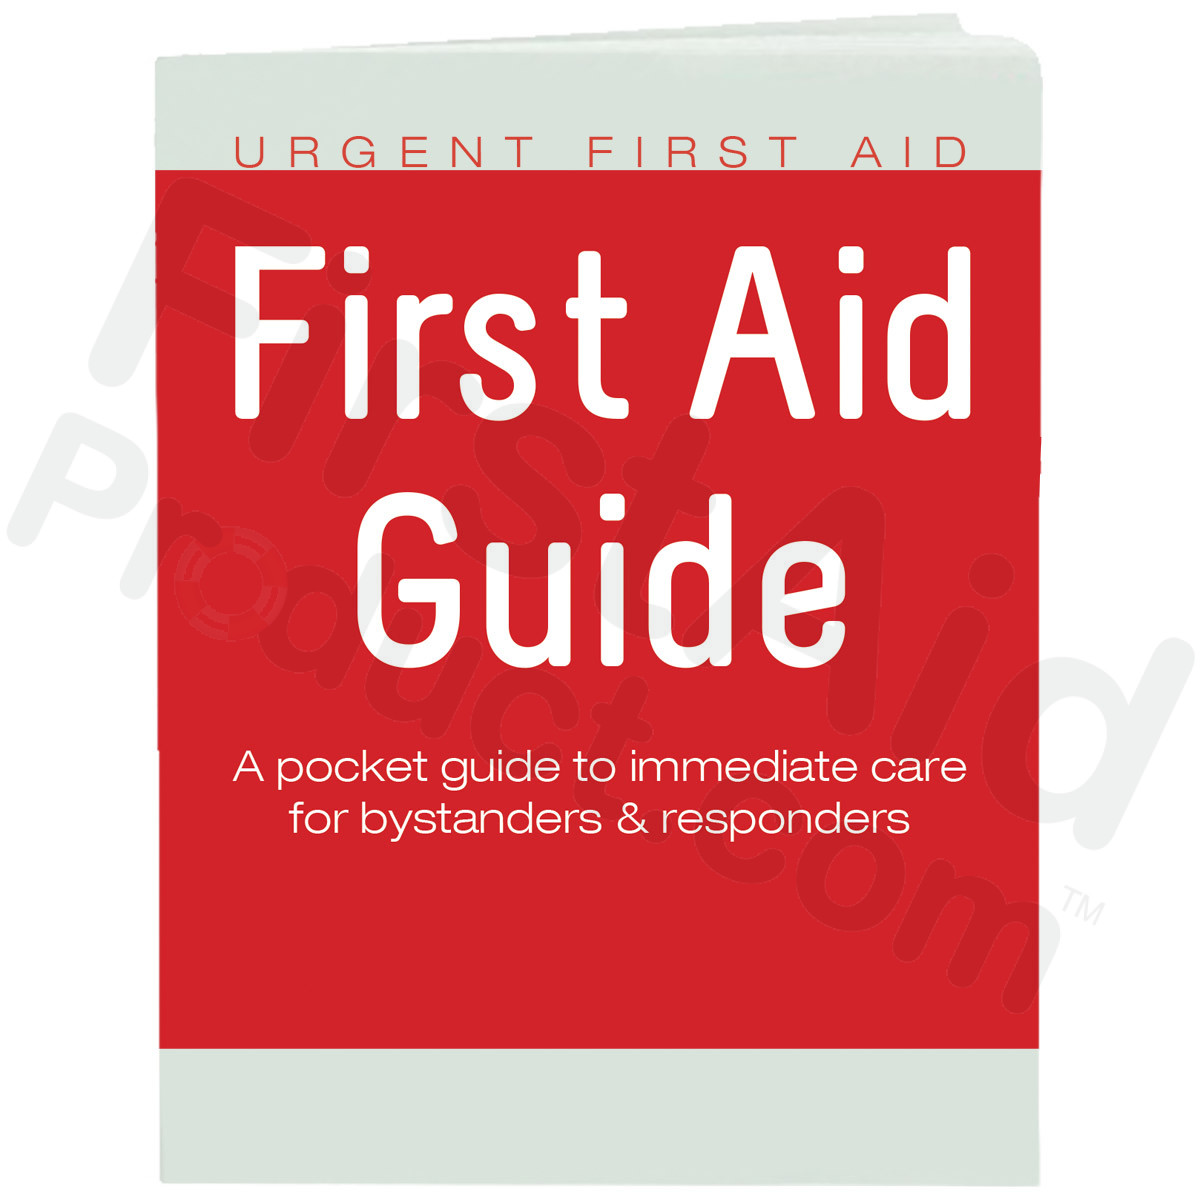 first aid product com best value first aid guide book 48 full rh first aid product com first aid manual handling first aid manual uk